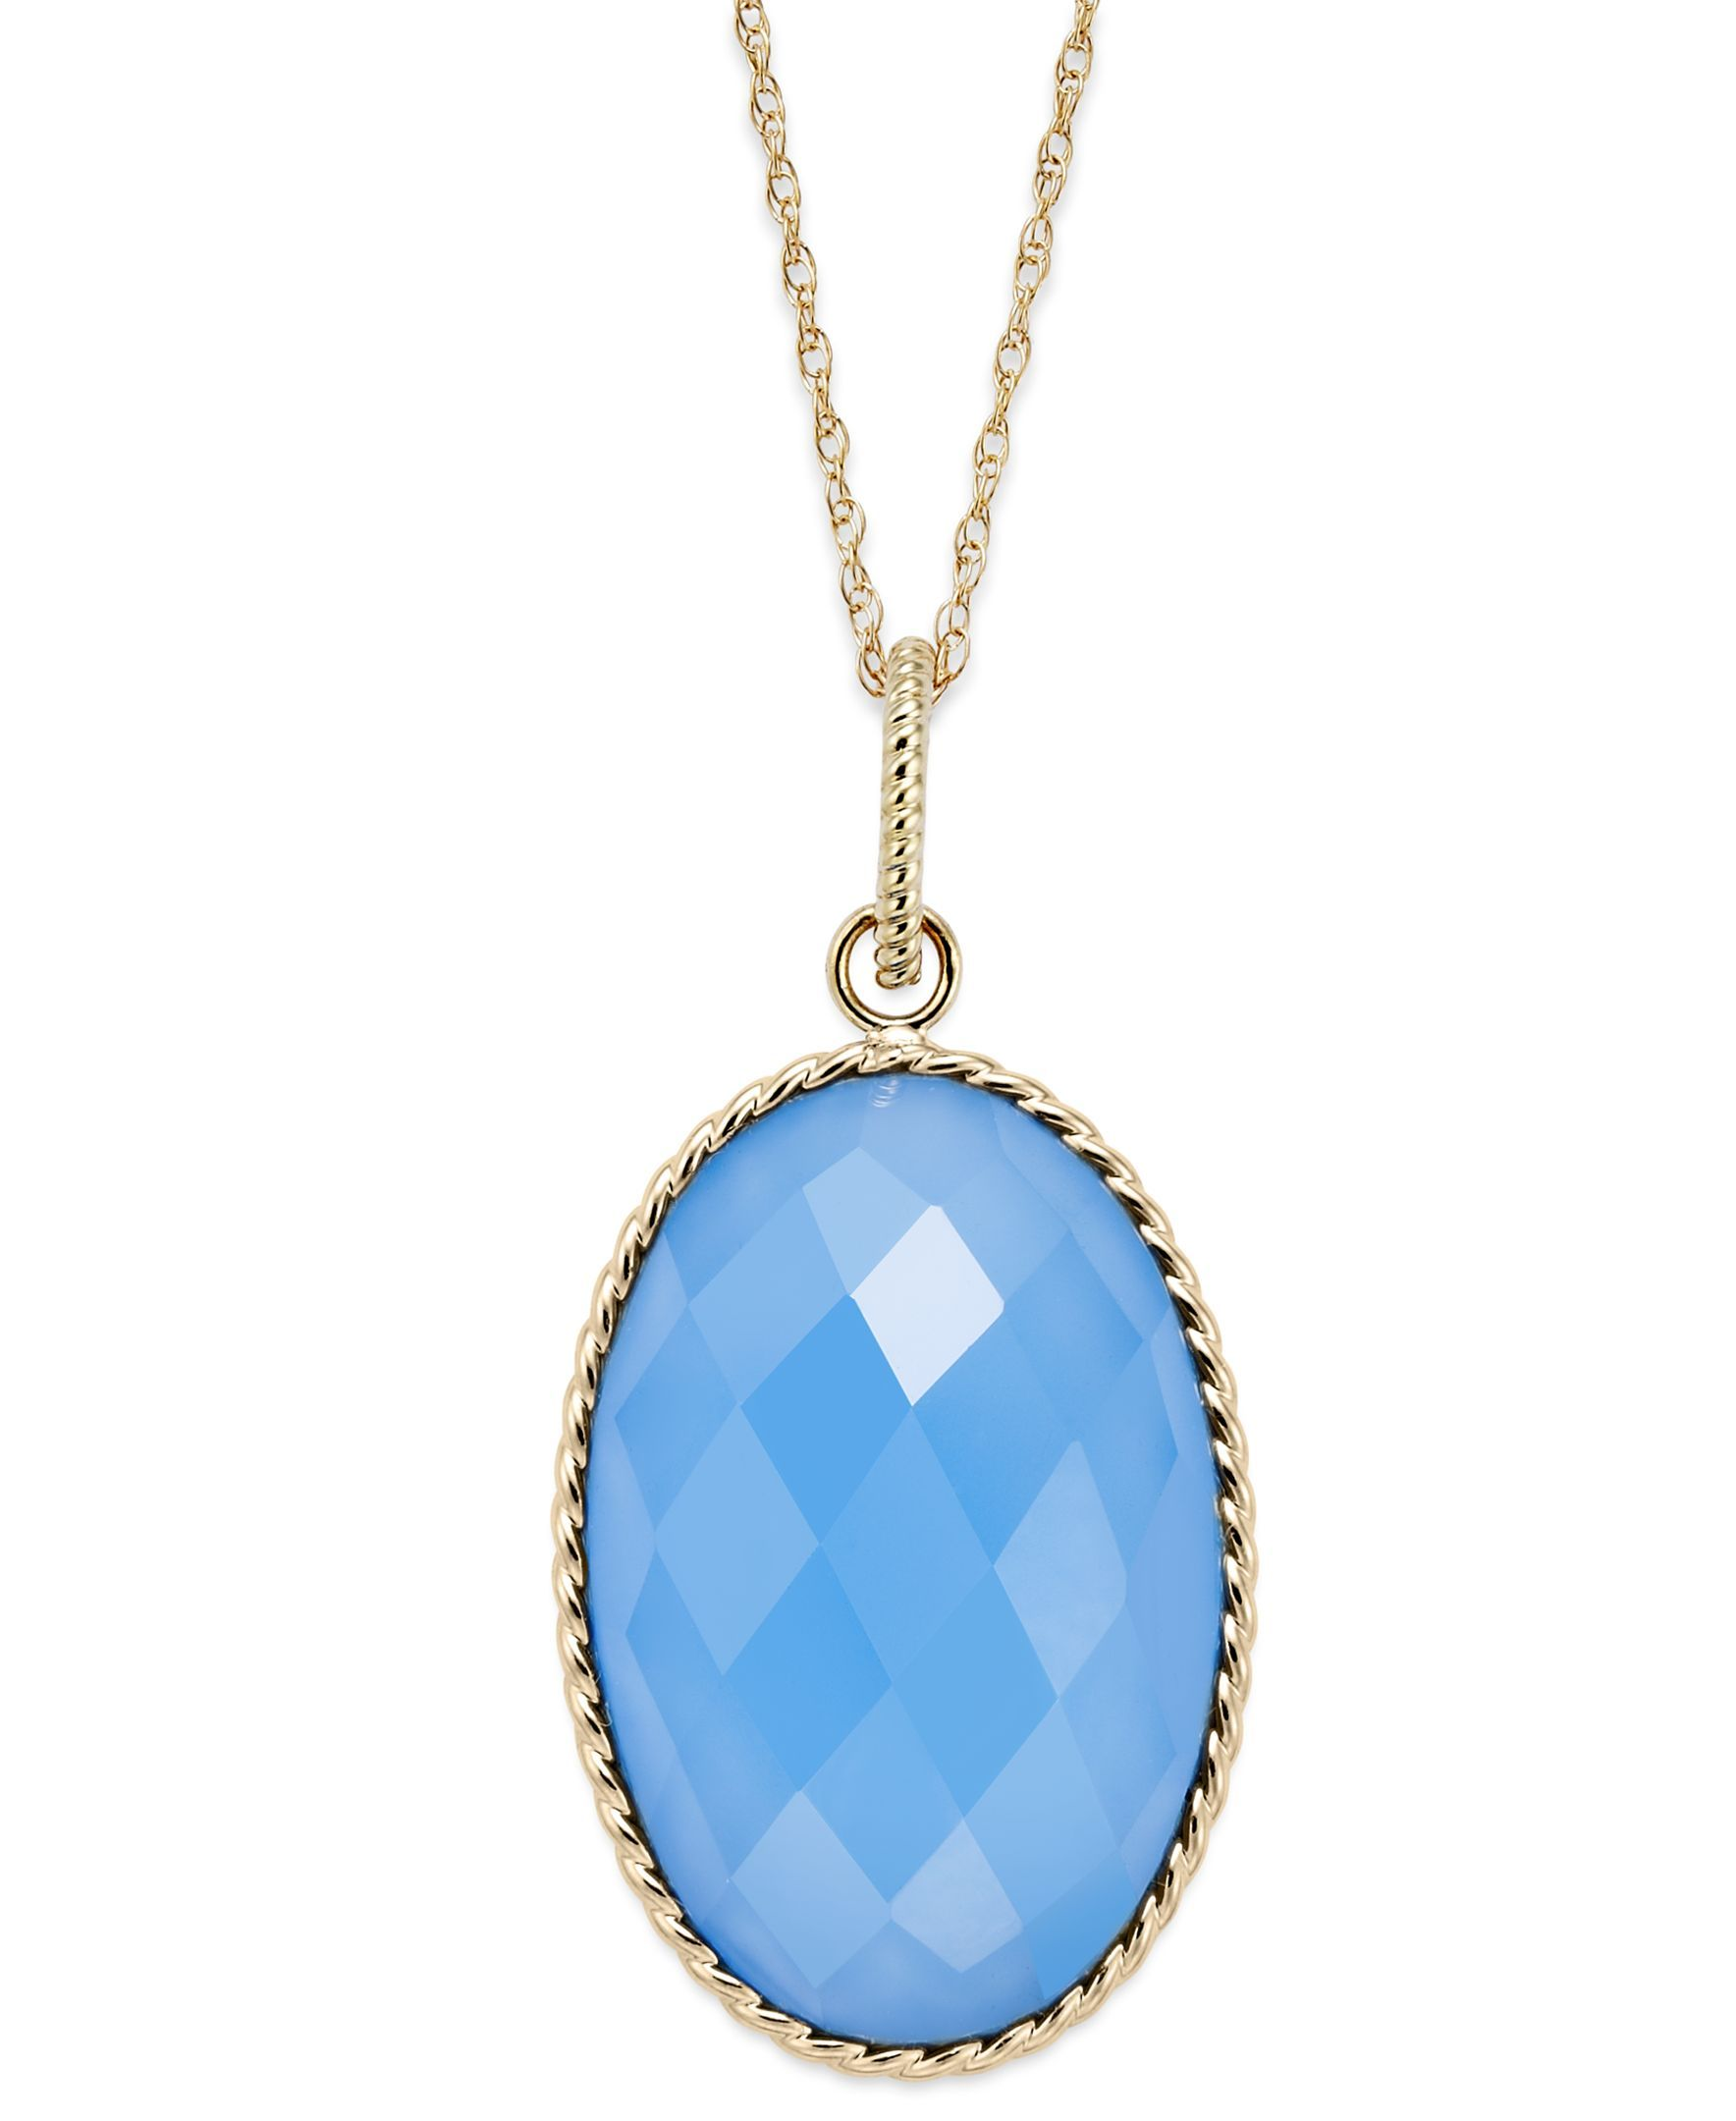 14k Gold Necklace, Faceted Oval Blue Chalcedony Pendant (10 ct. t.w.)